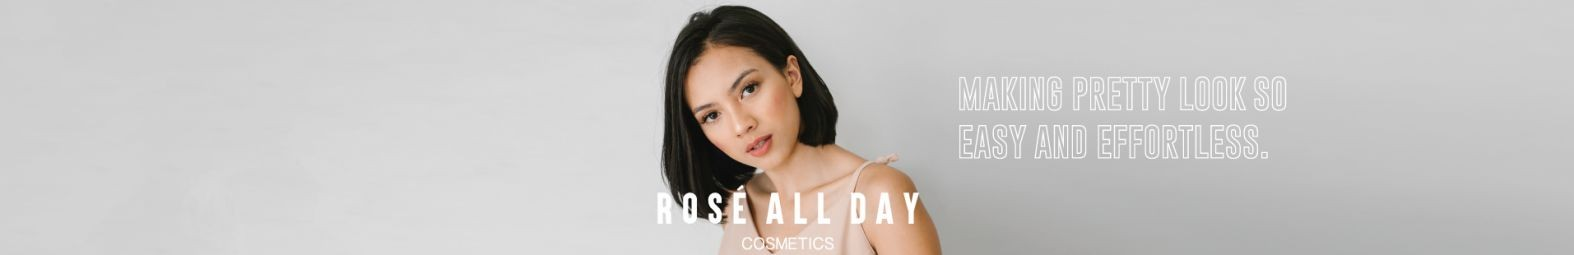 Rose All Day Cosmetics